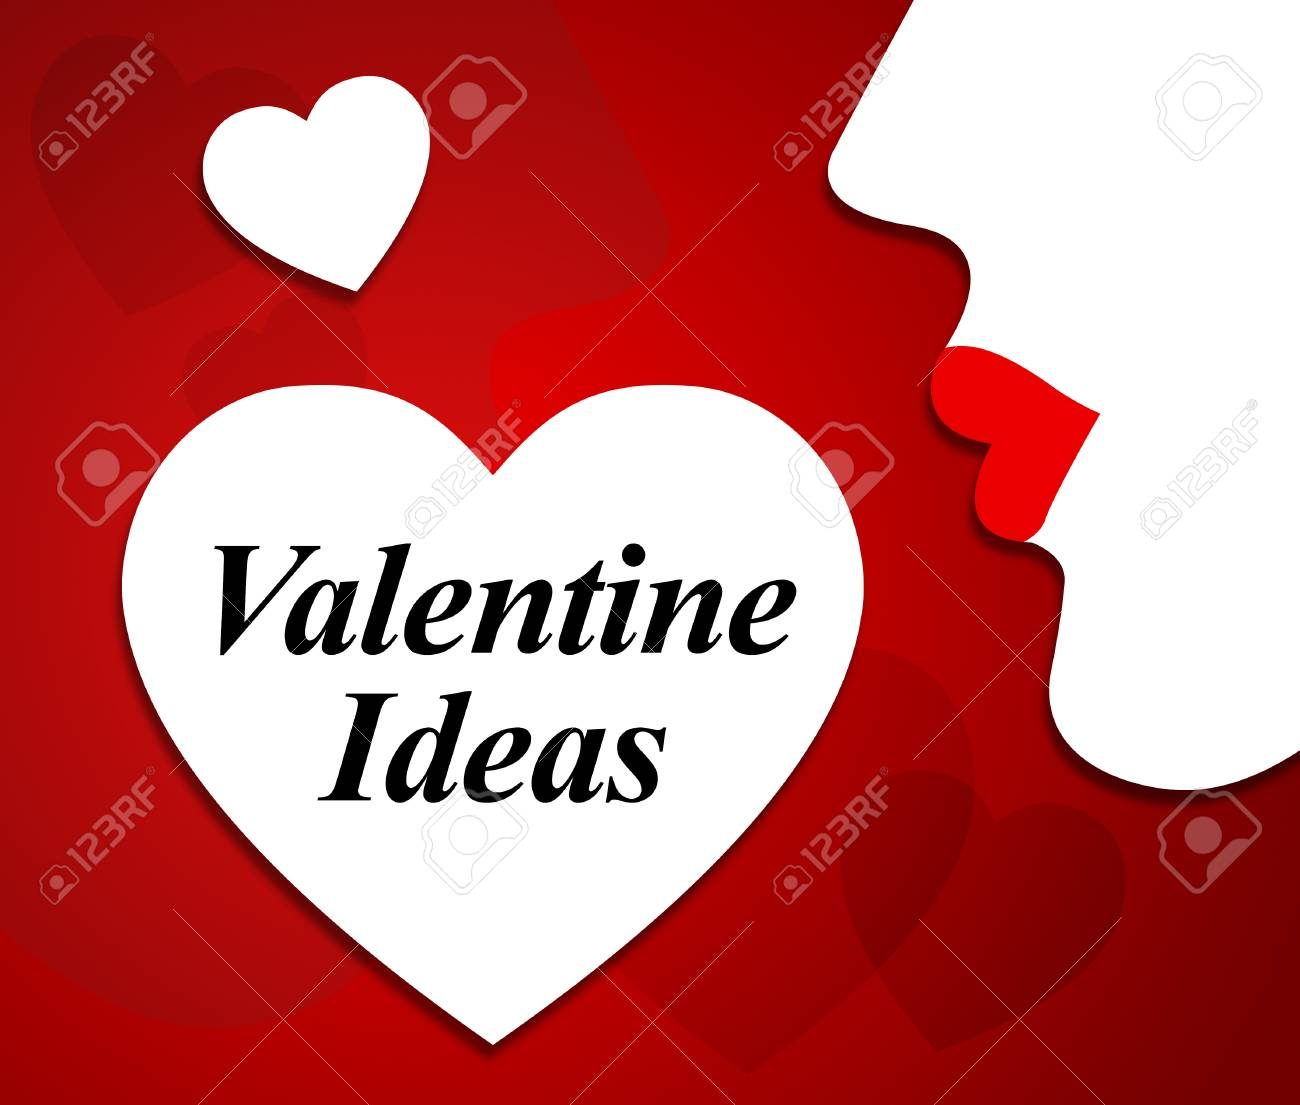 Valentine Ideas Meaning Valentines Day And Boyfriend Stock Photo